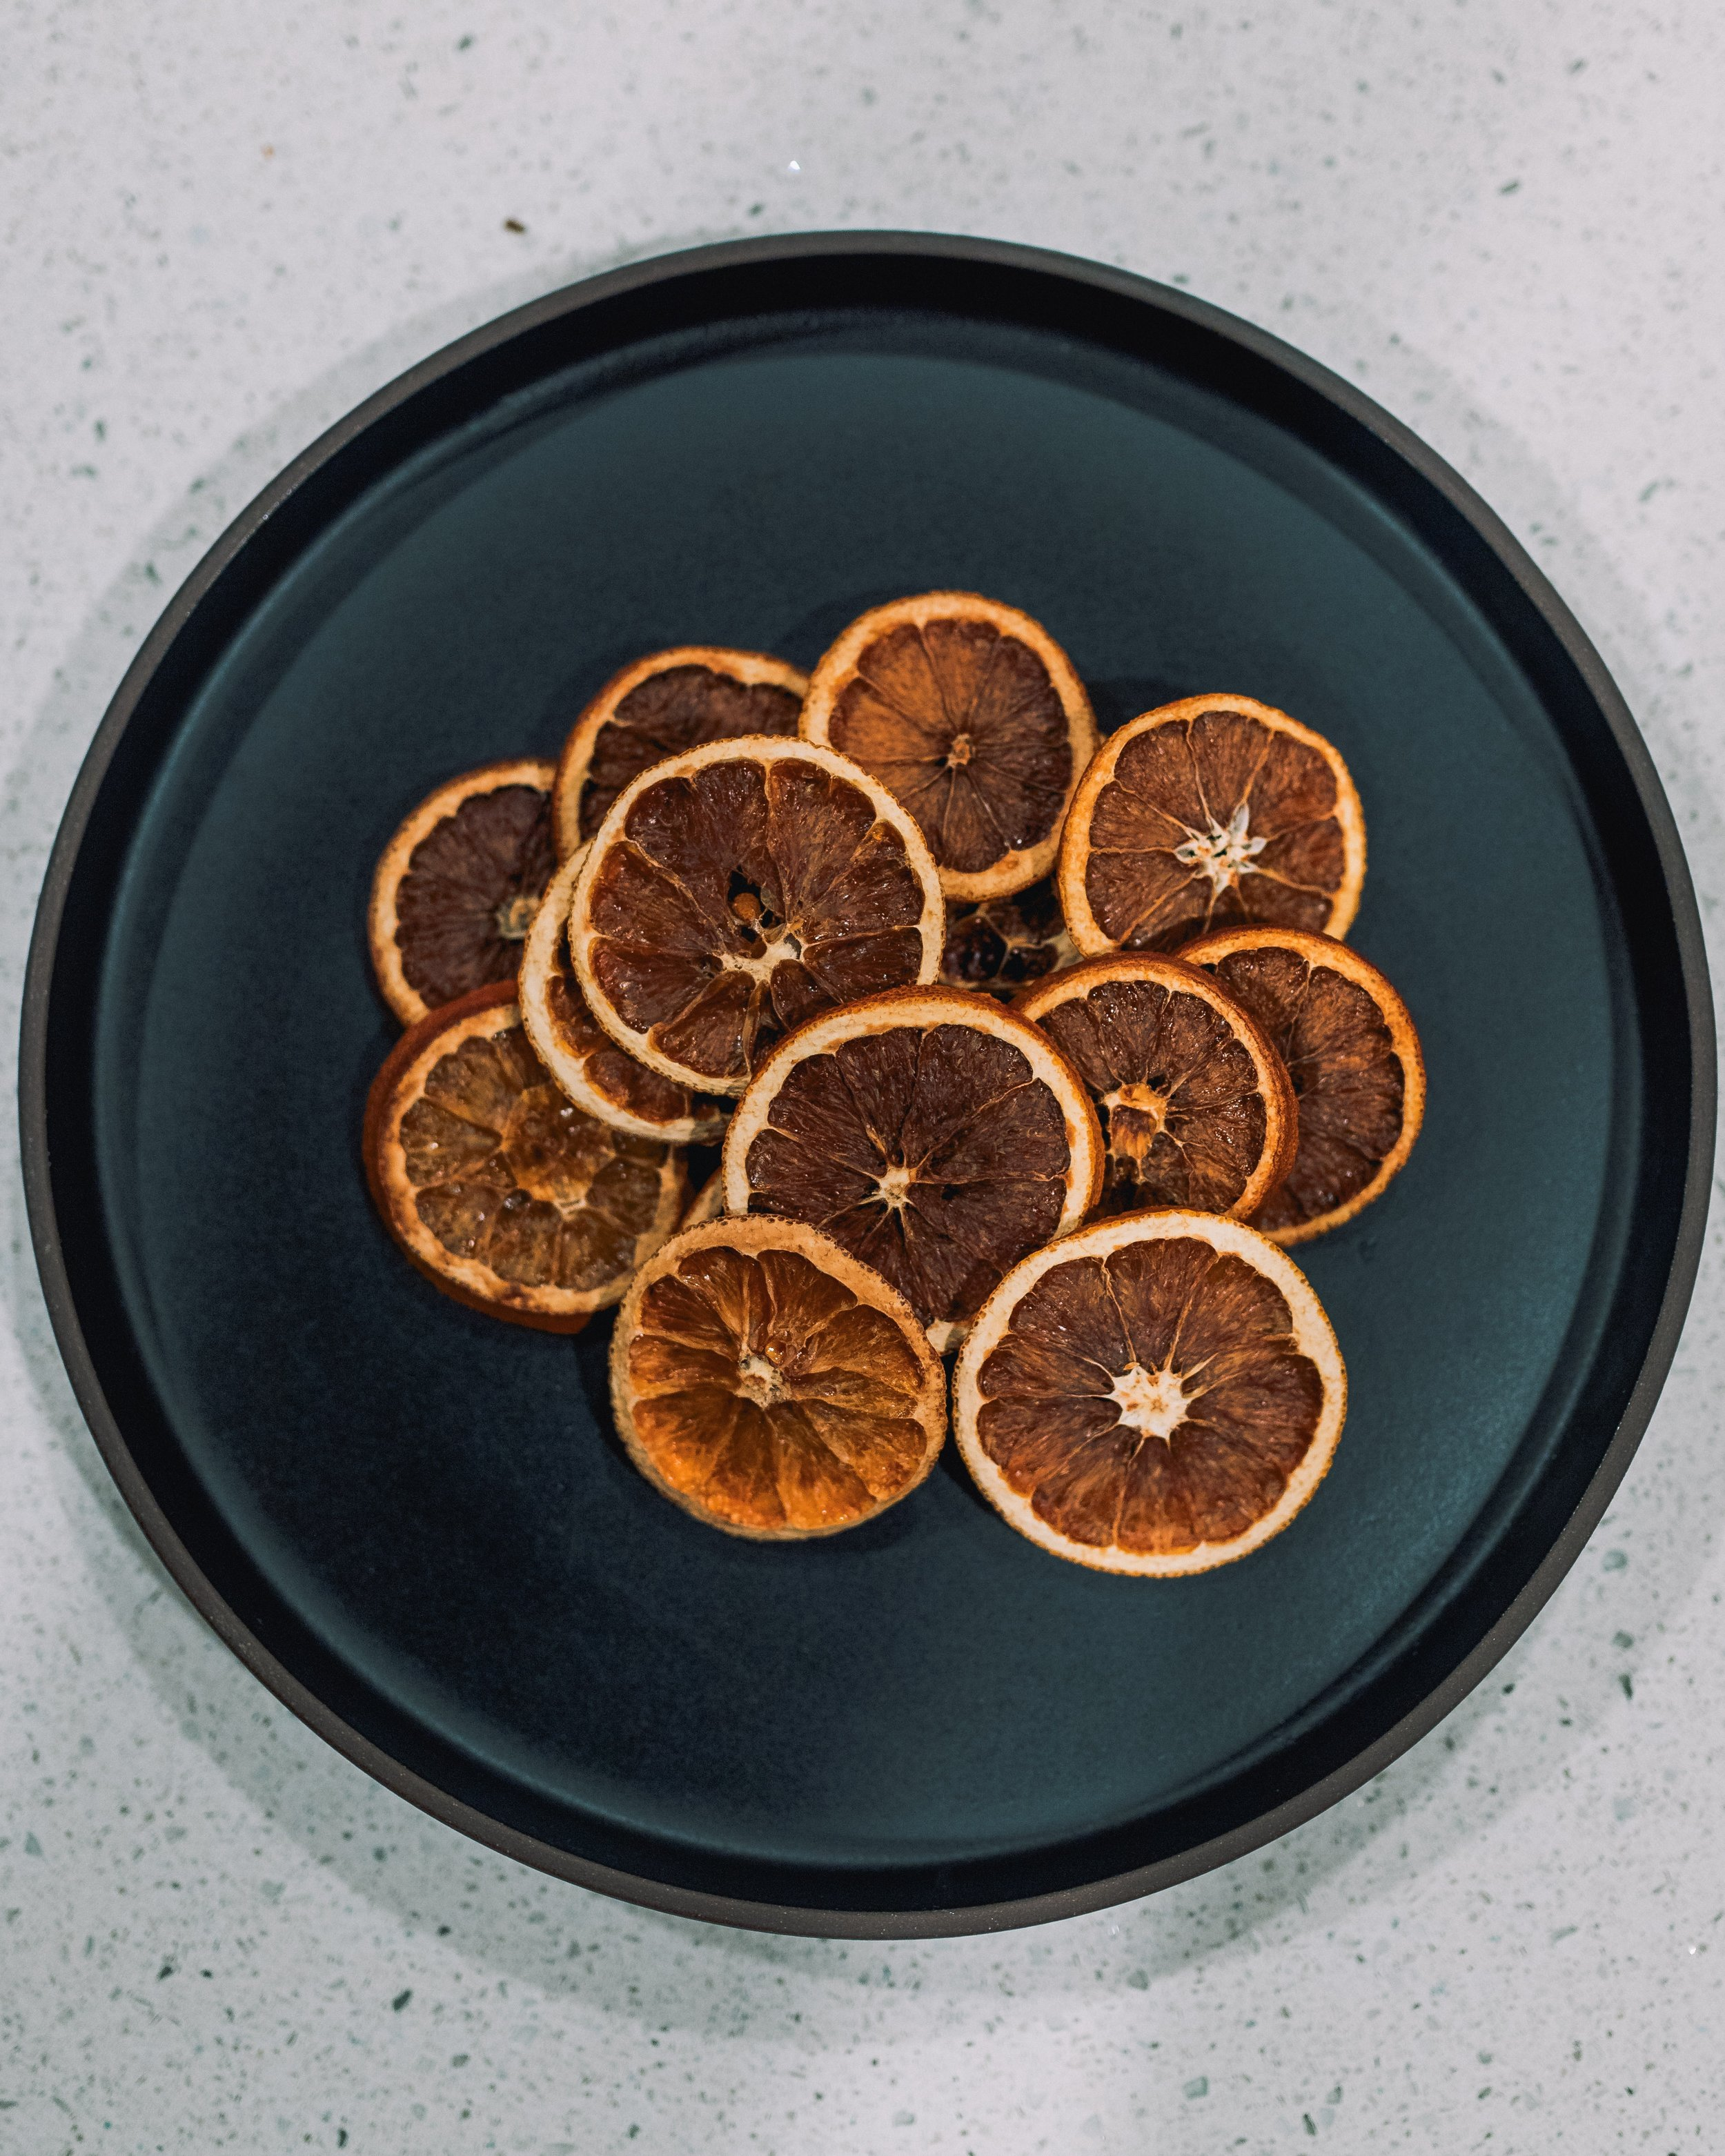 A photo of dehydrated oranges.